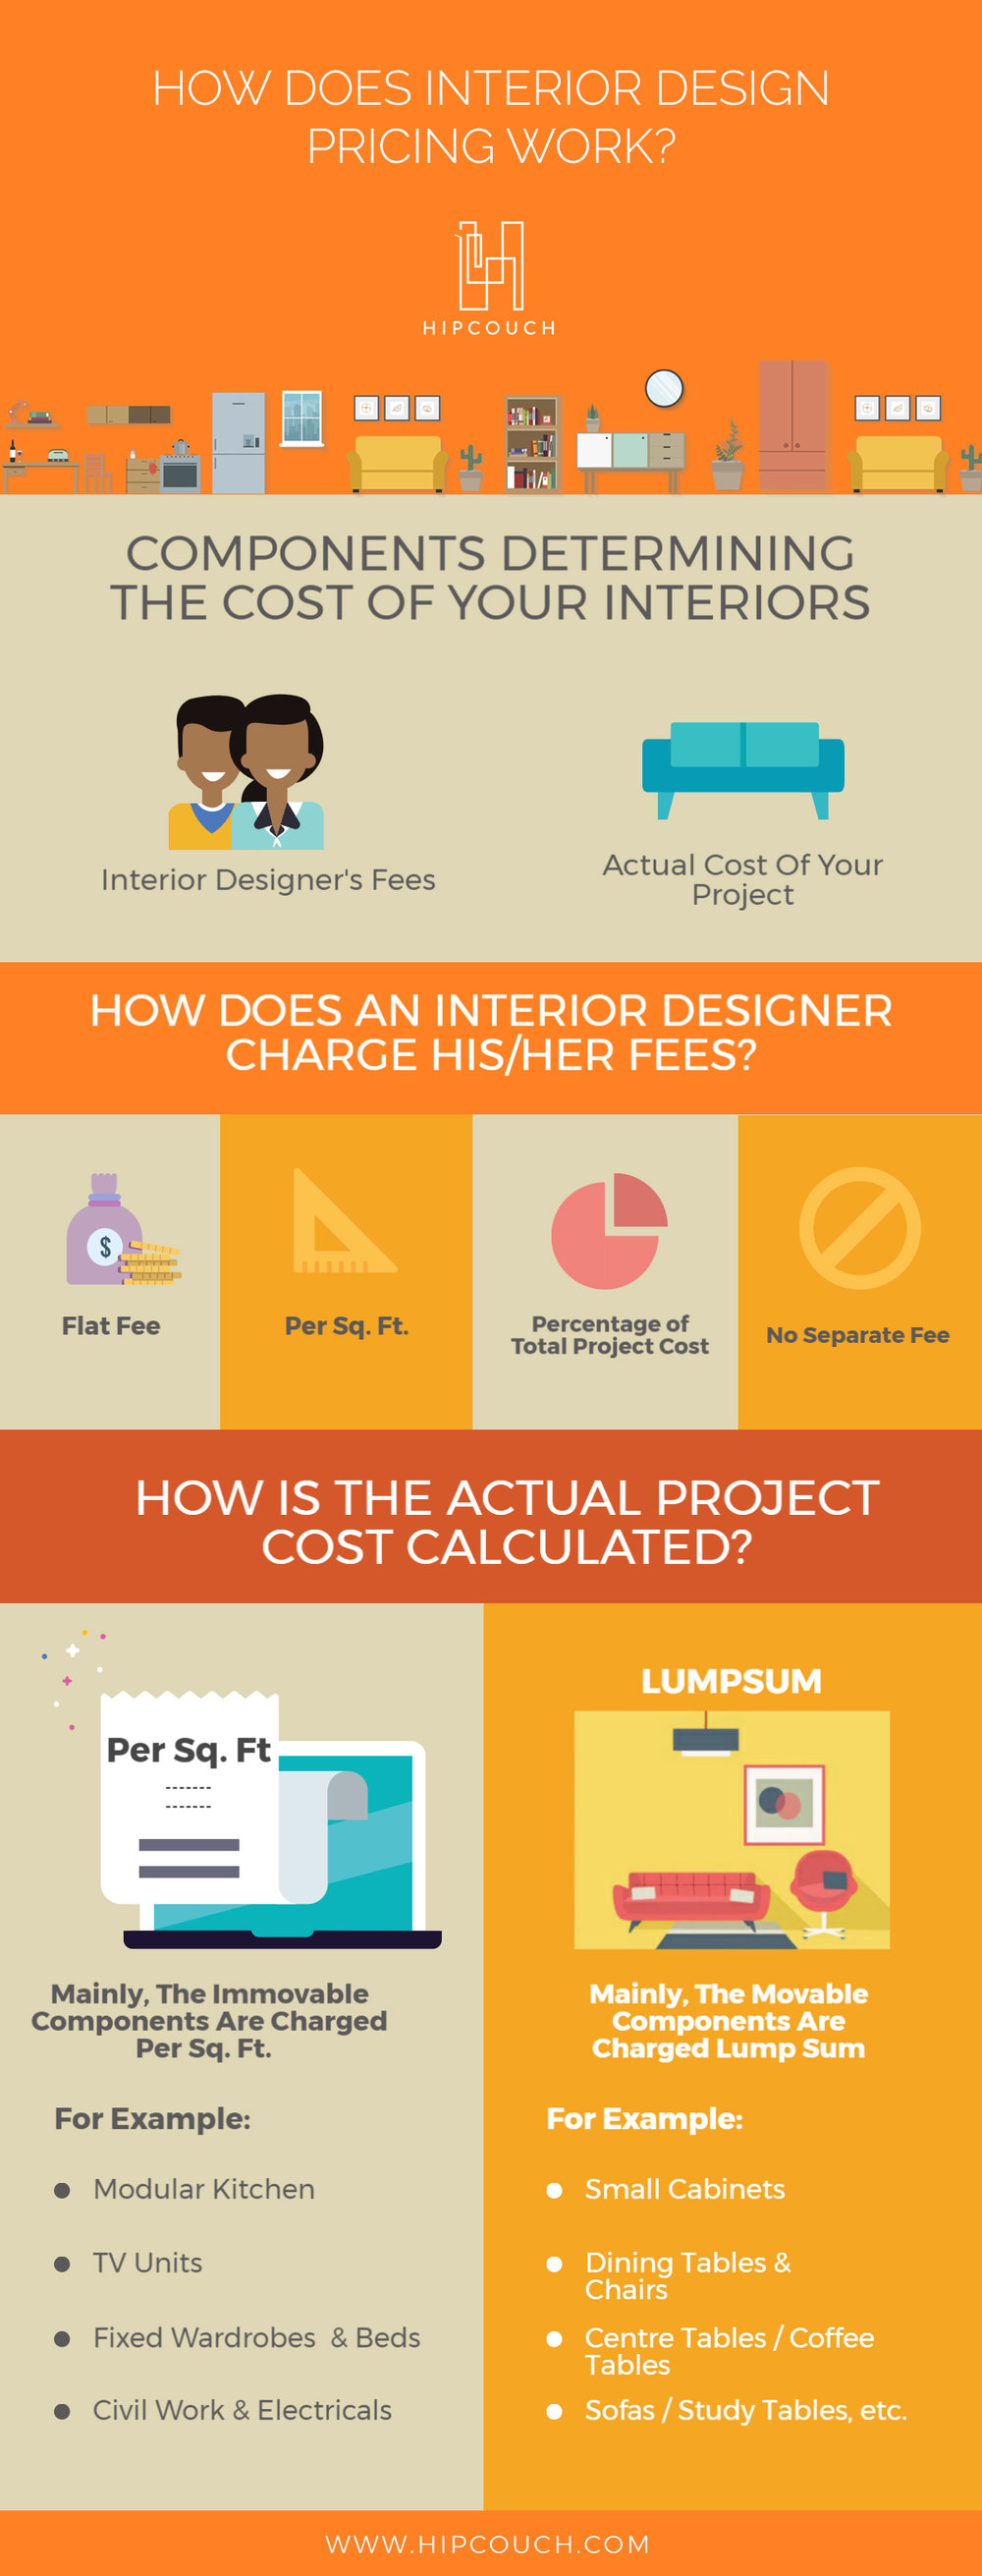 Visual-Guide-on-How-is-Your-Interior-Design-Project-Priced